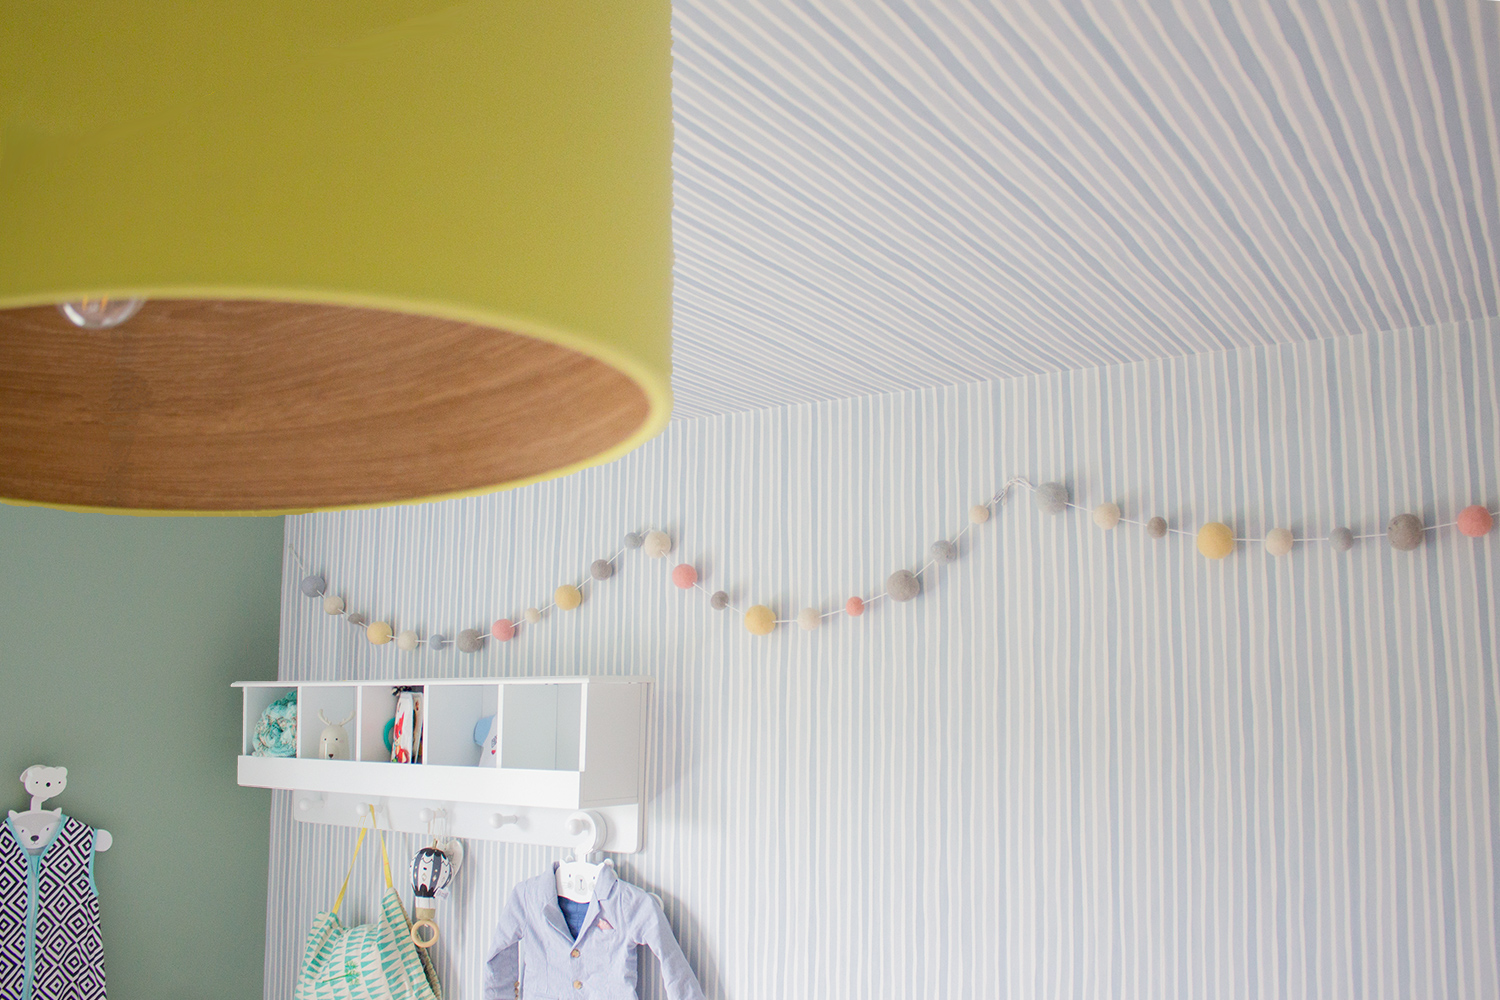 A photo of the subtly stripe wallpaper on the ceiling